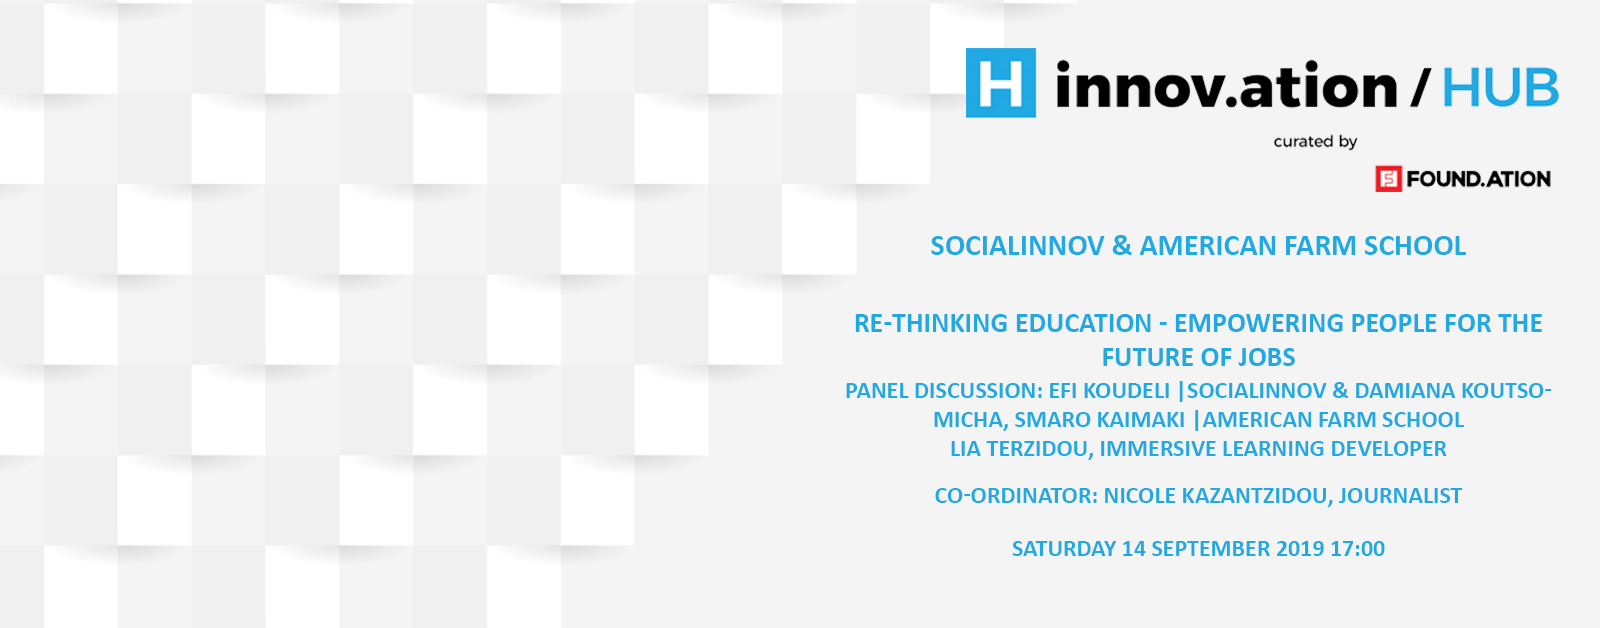 Re-thinking Education - Empowering people for the future of jobs (TIF19)